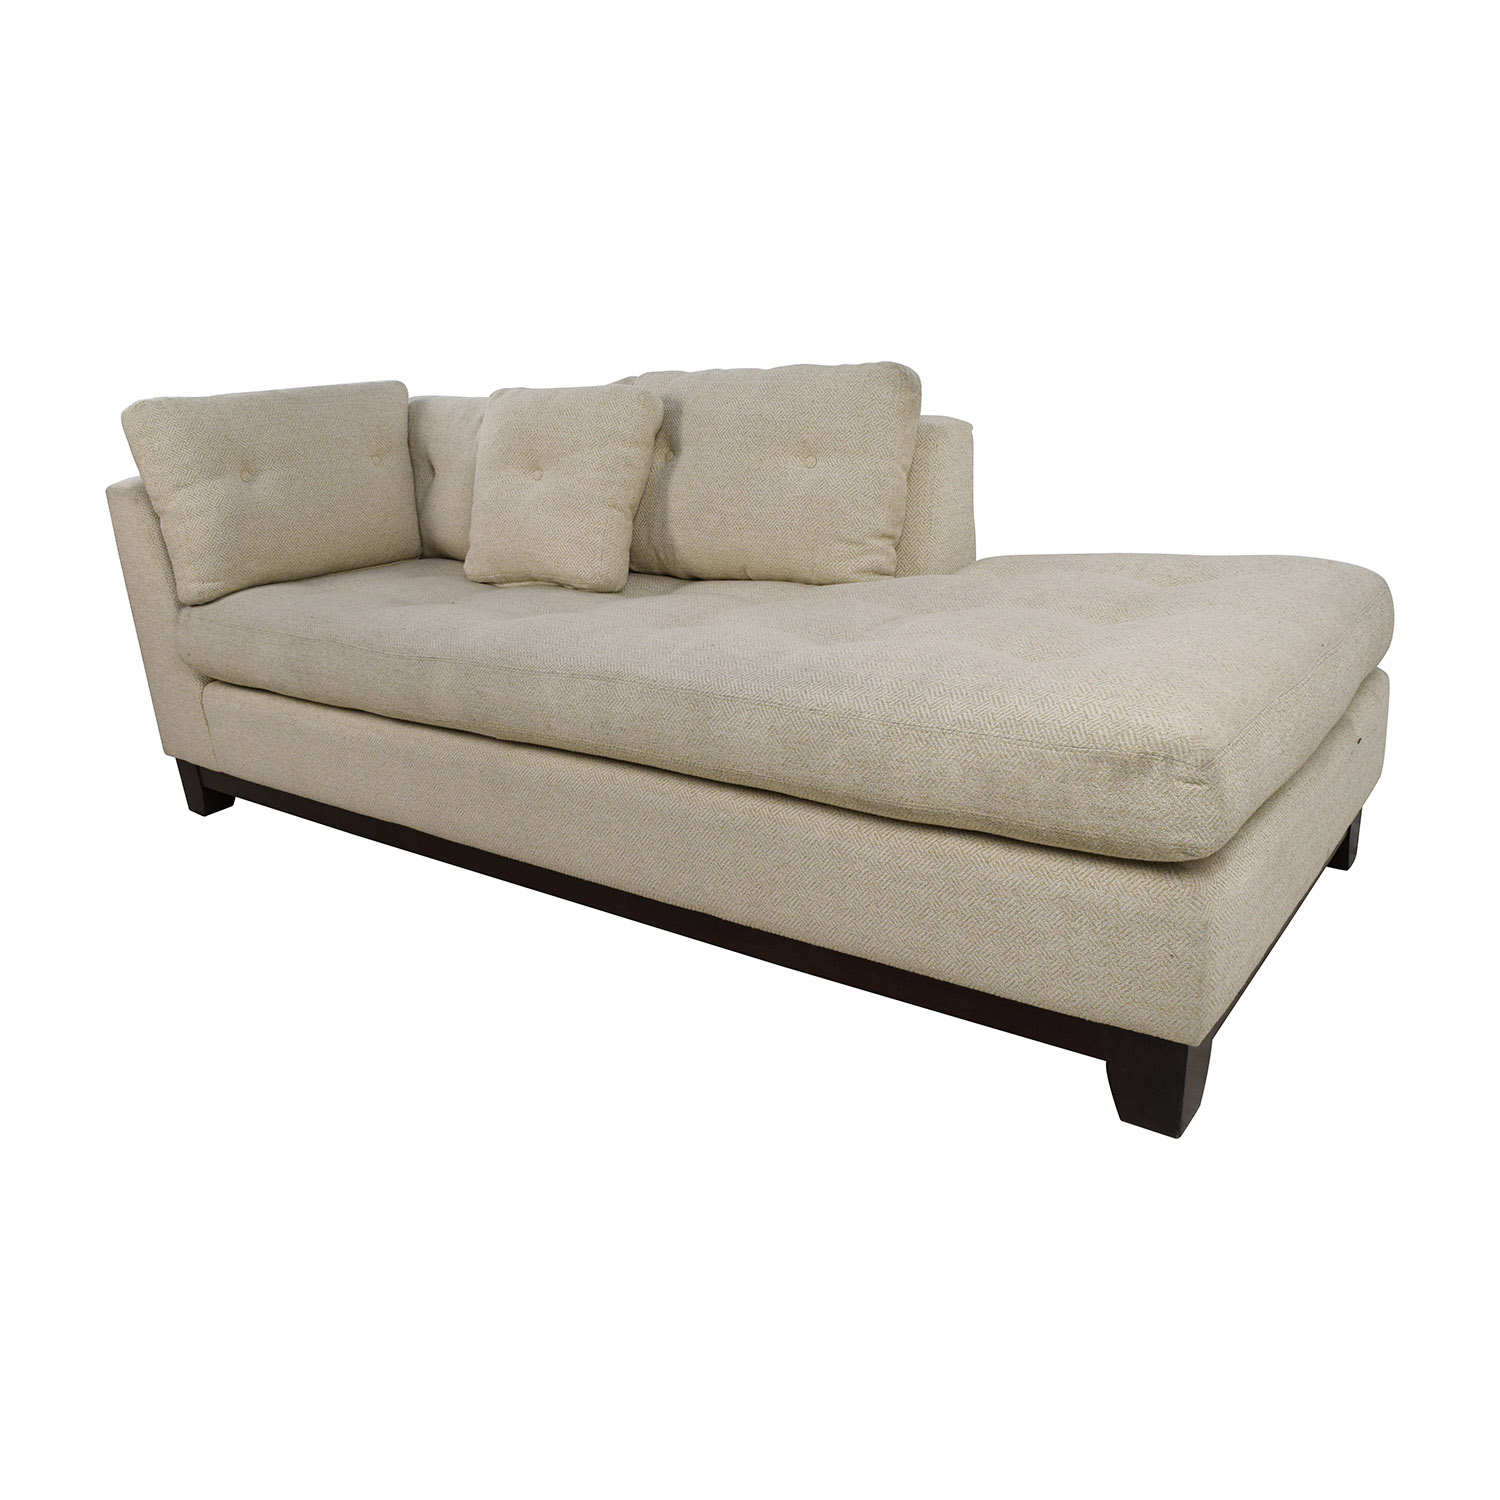 79 Off Freestyle Freestyle Tufted Natural Fabric Sofa Chaise Sofas